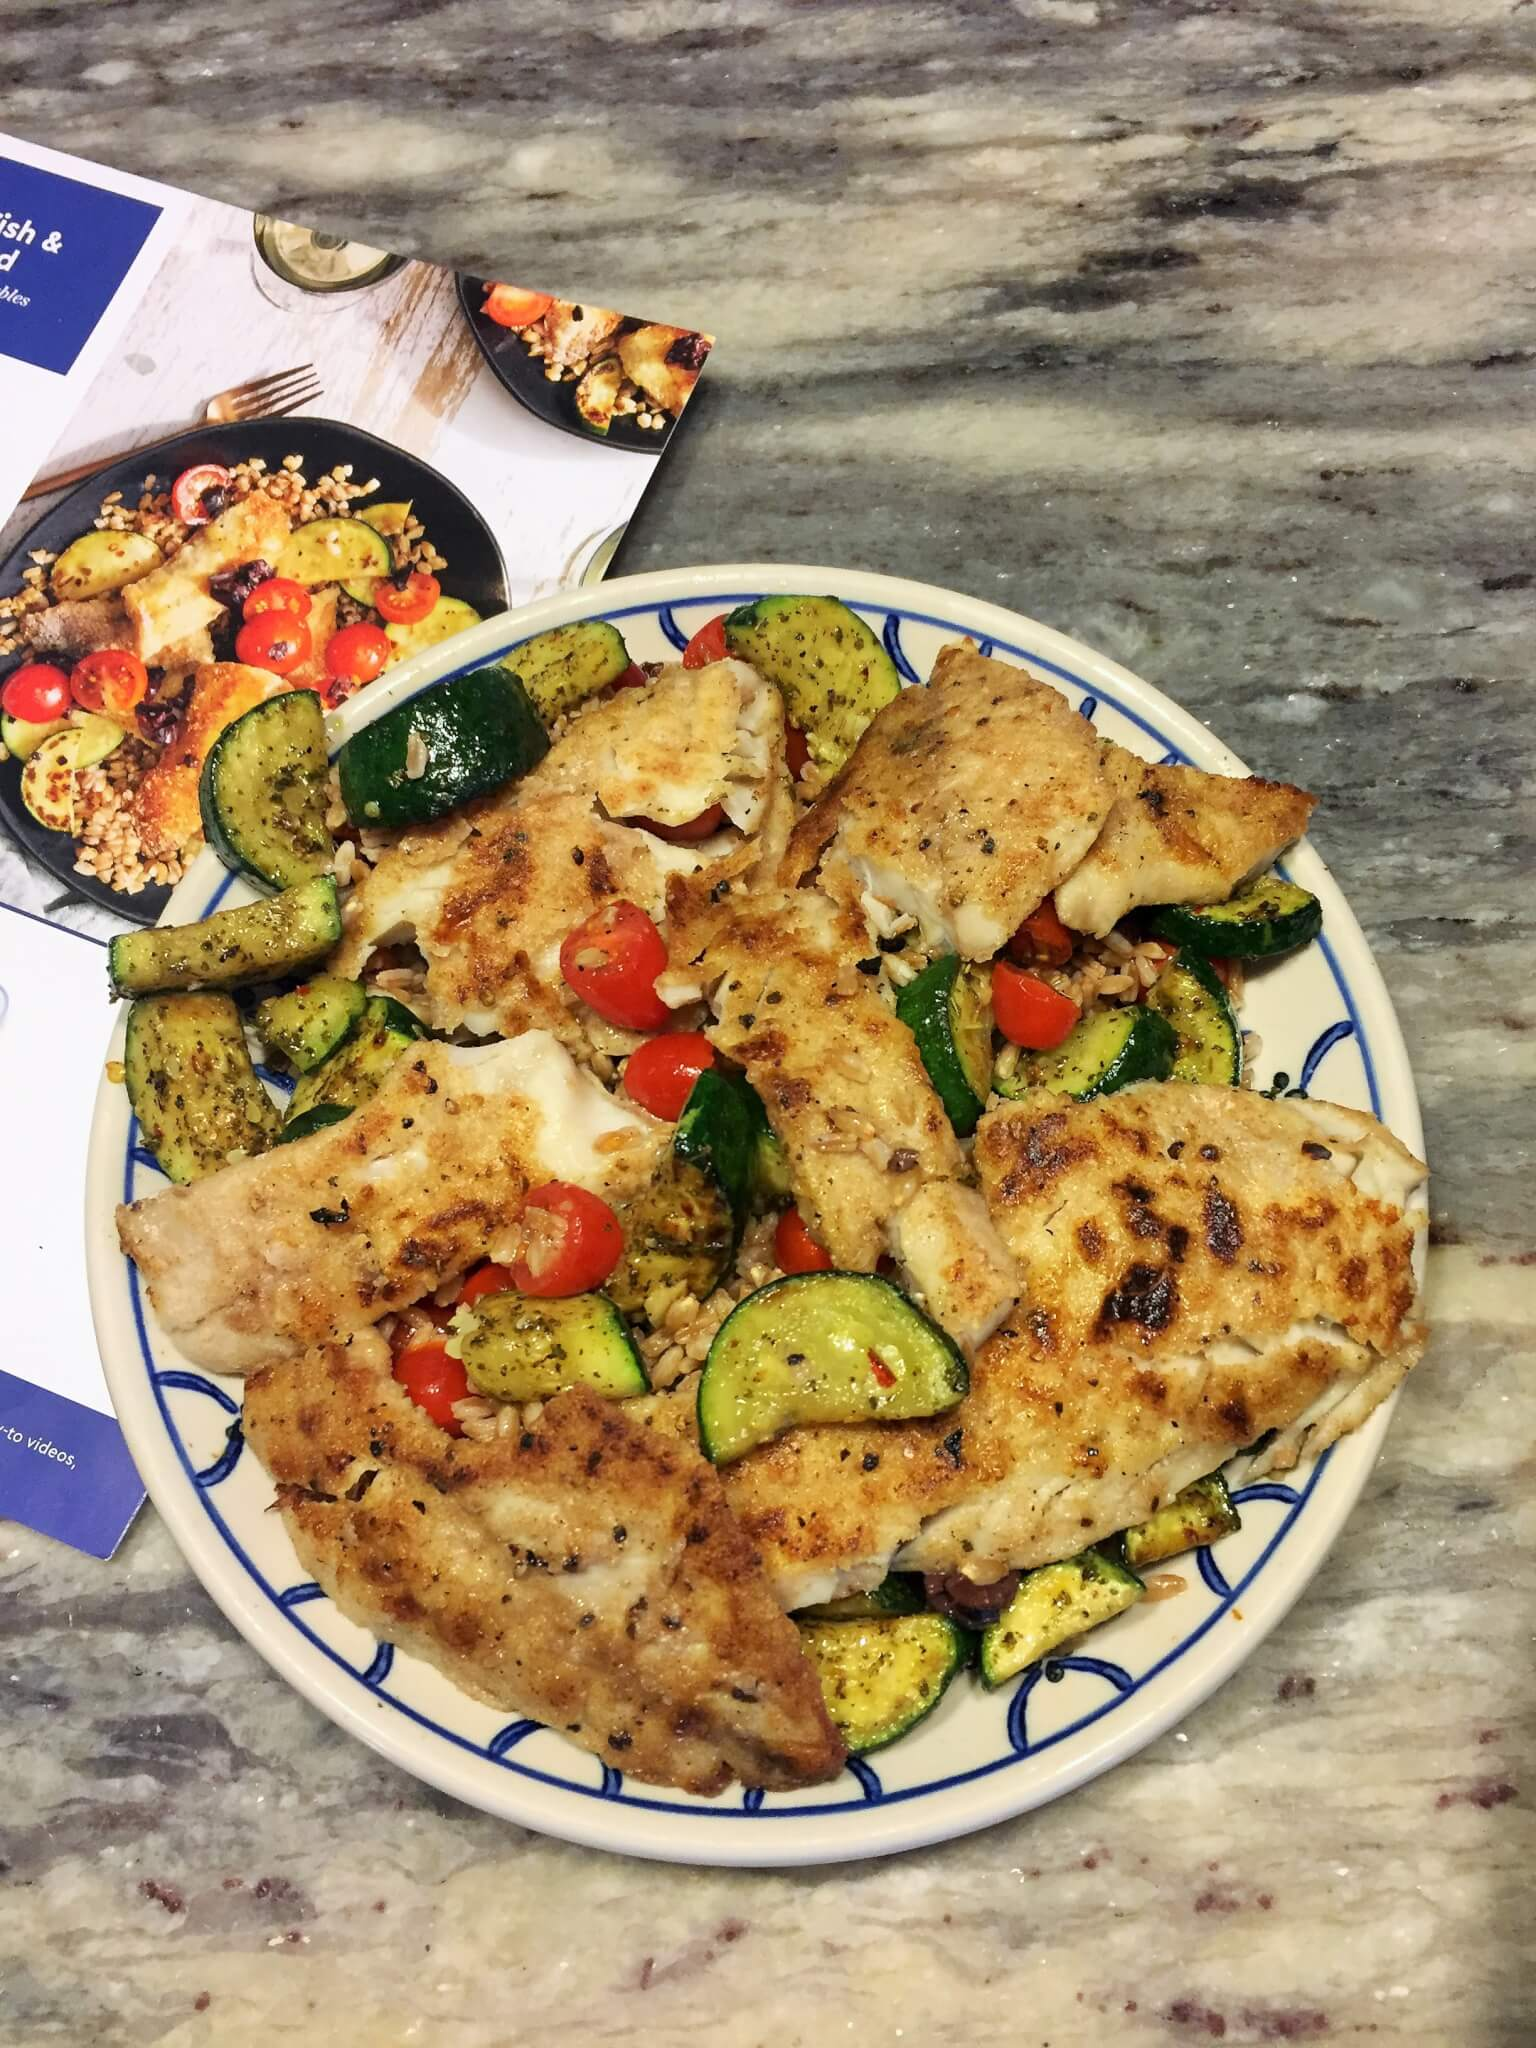 Blue Apron Cooked Meal Seared Fish and Farro Salad